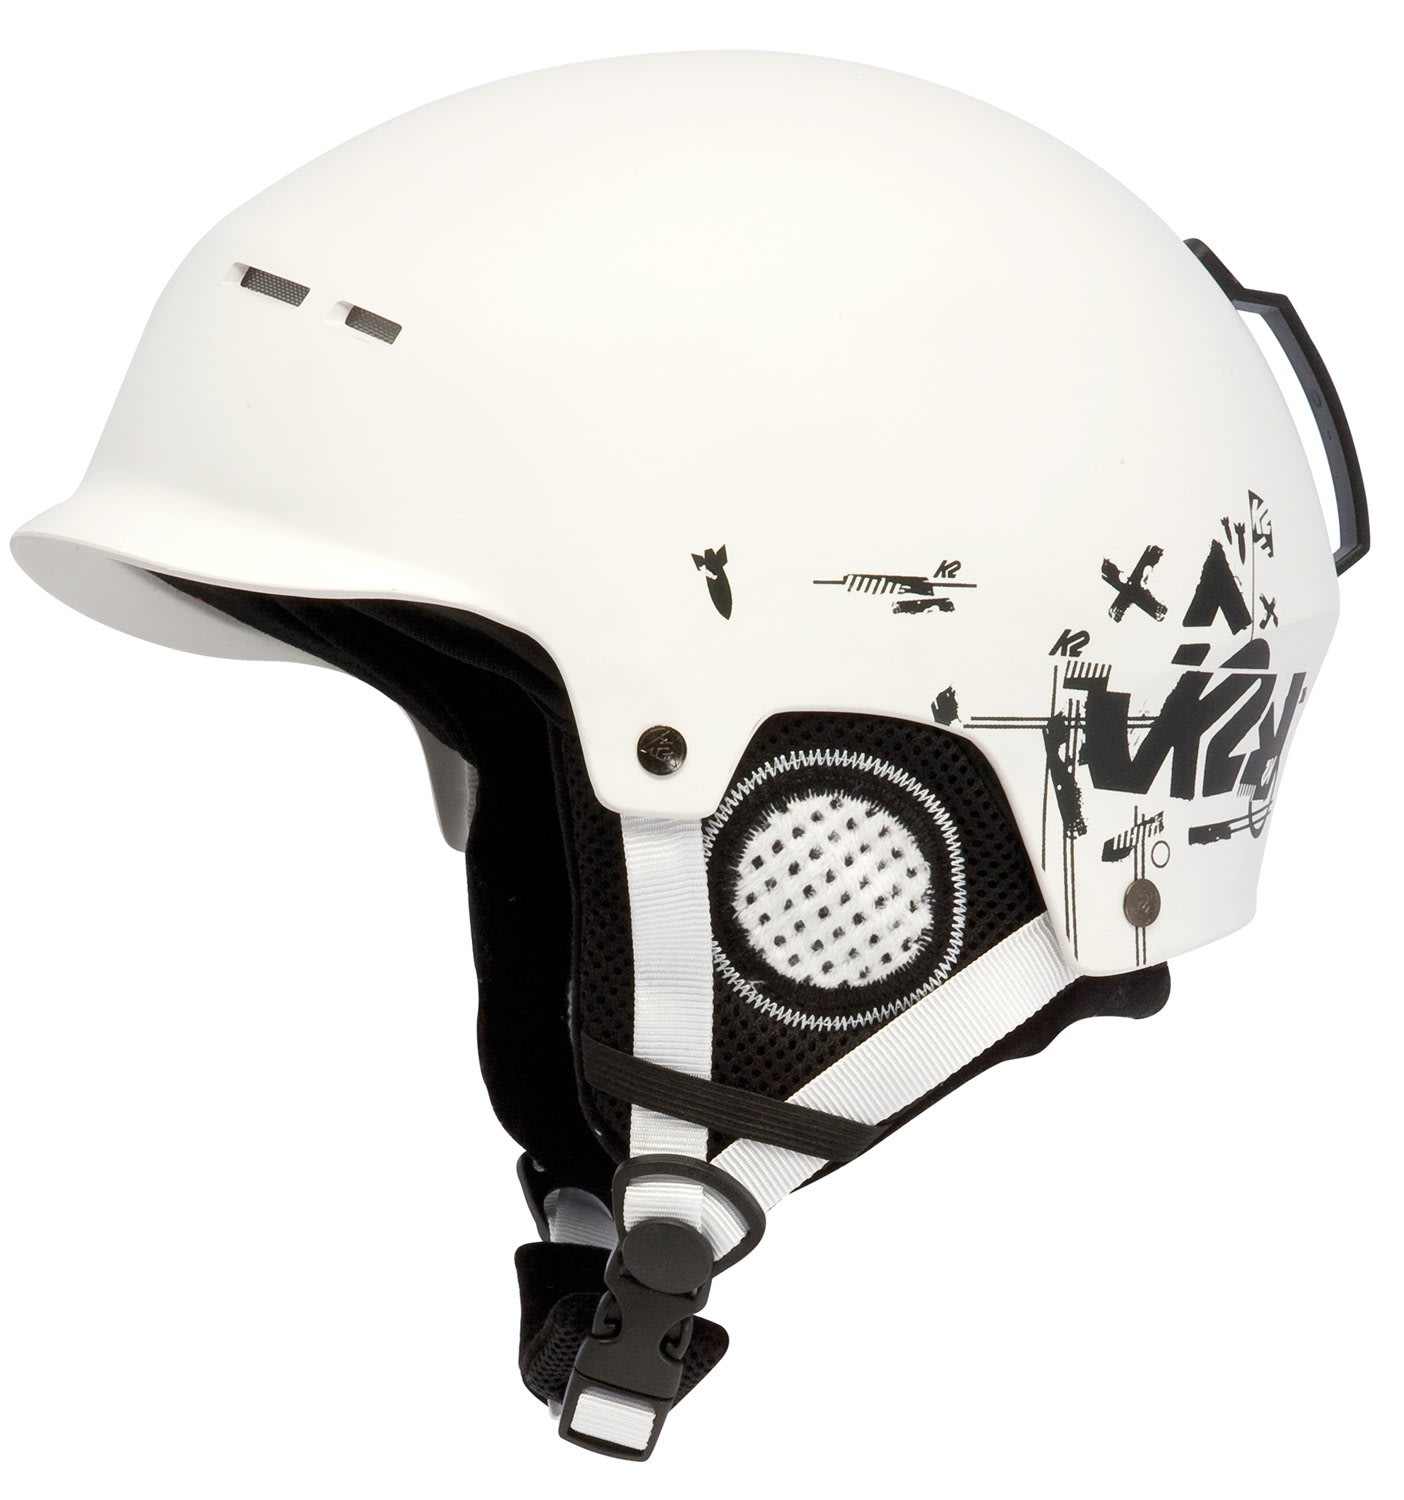 Shop for K2 Rant Ski Helmet White - Men's